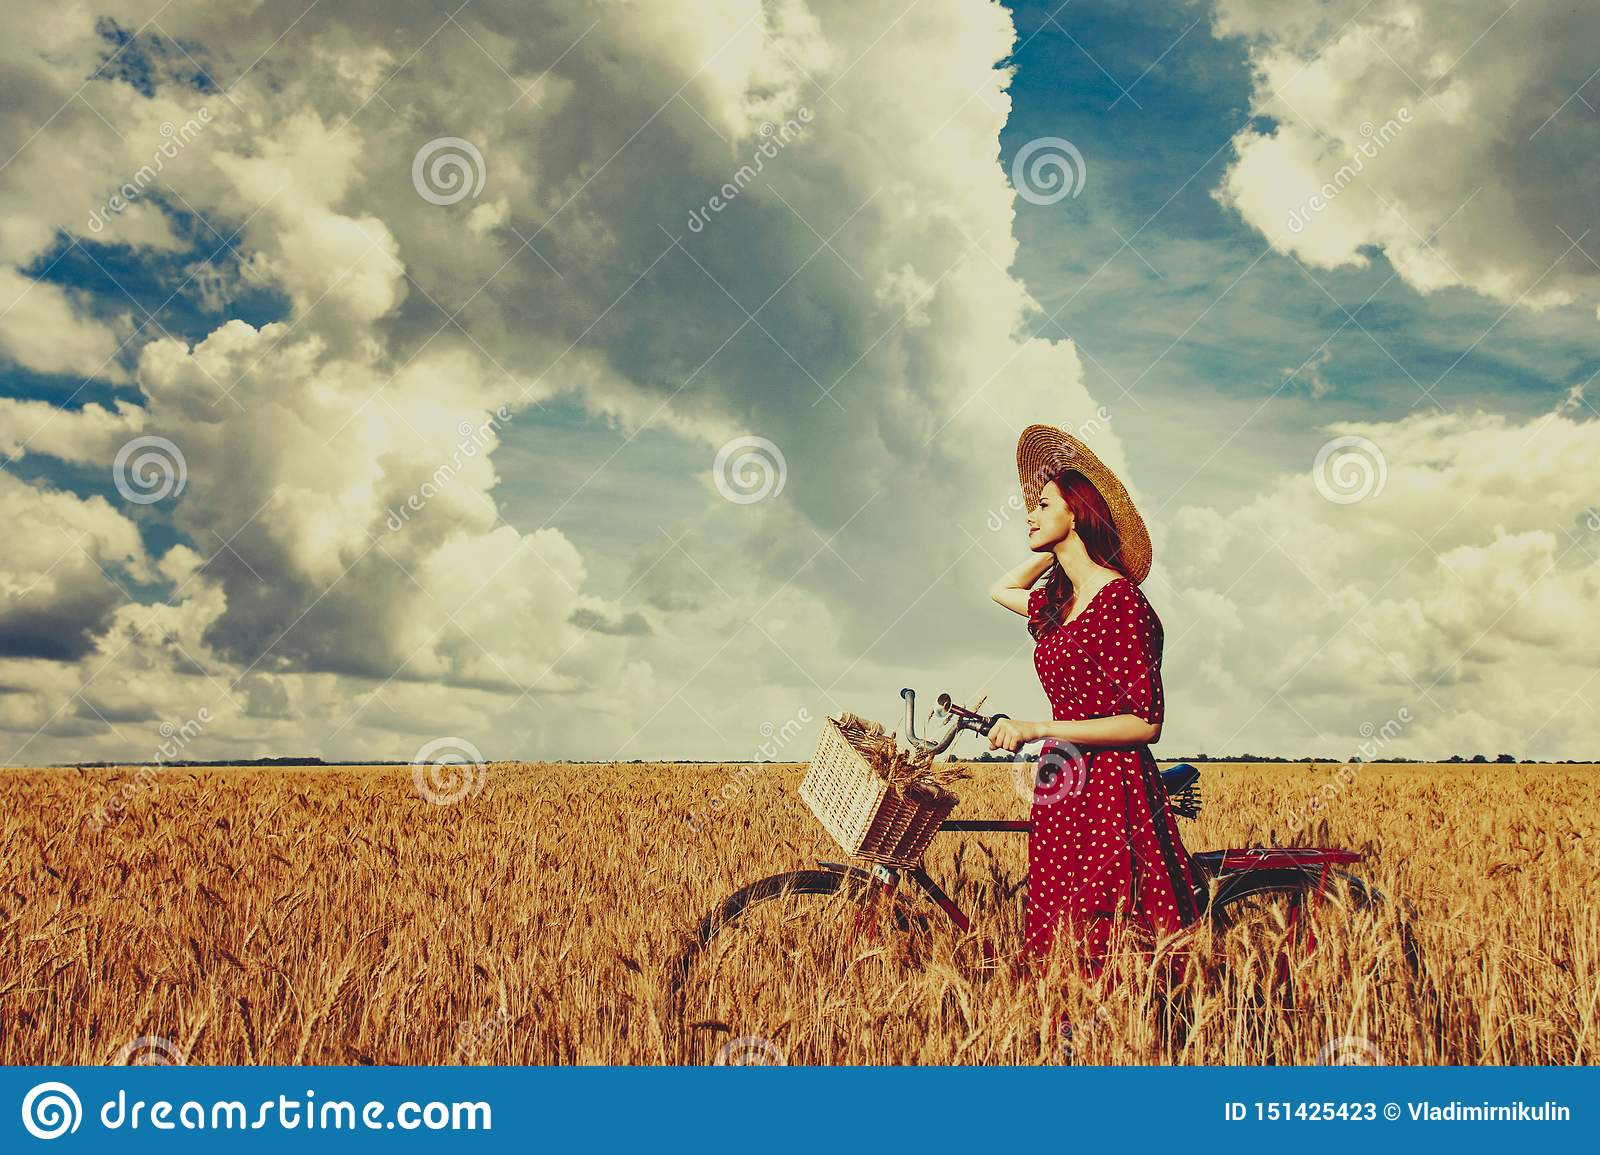 Peasant girl with bicycle on wheat field.